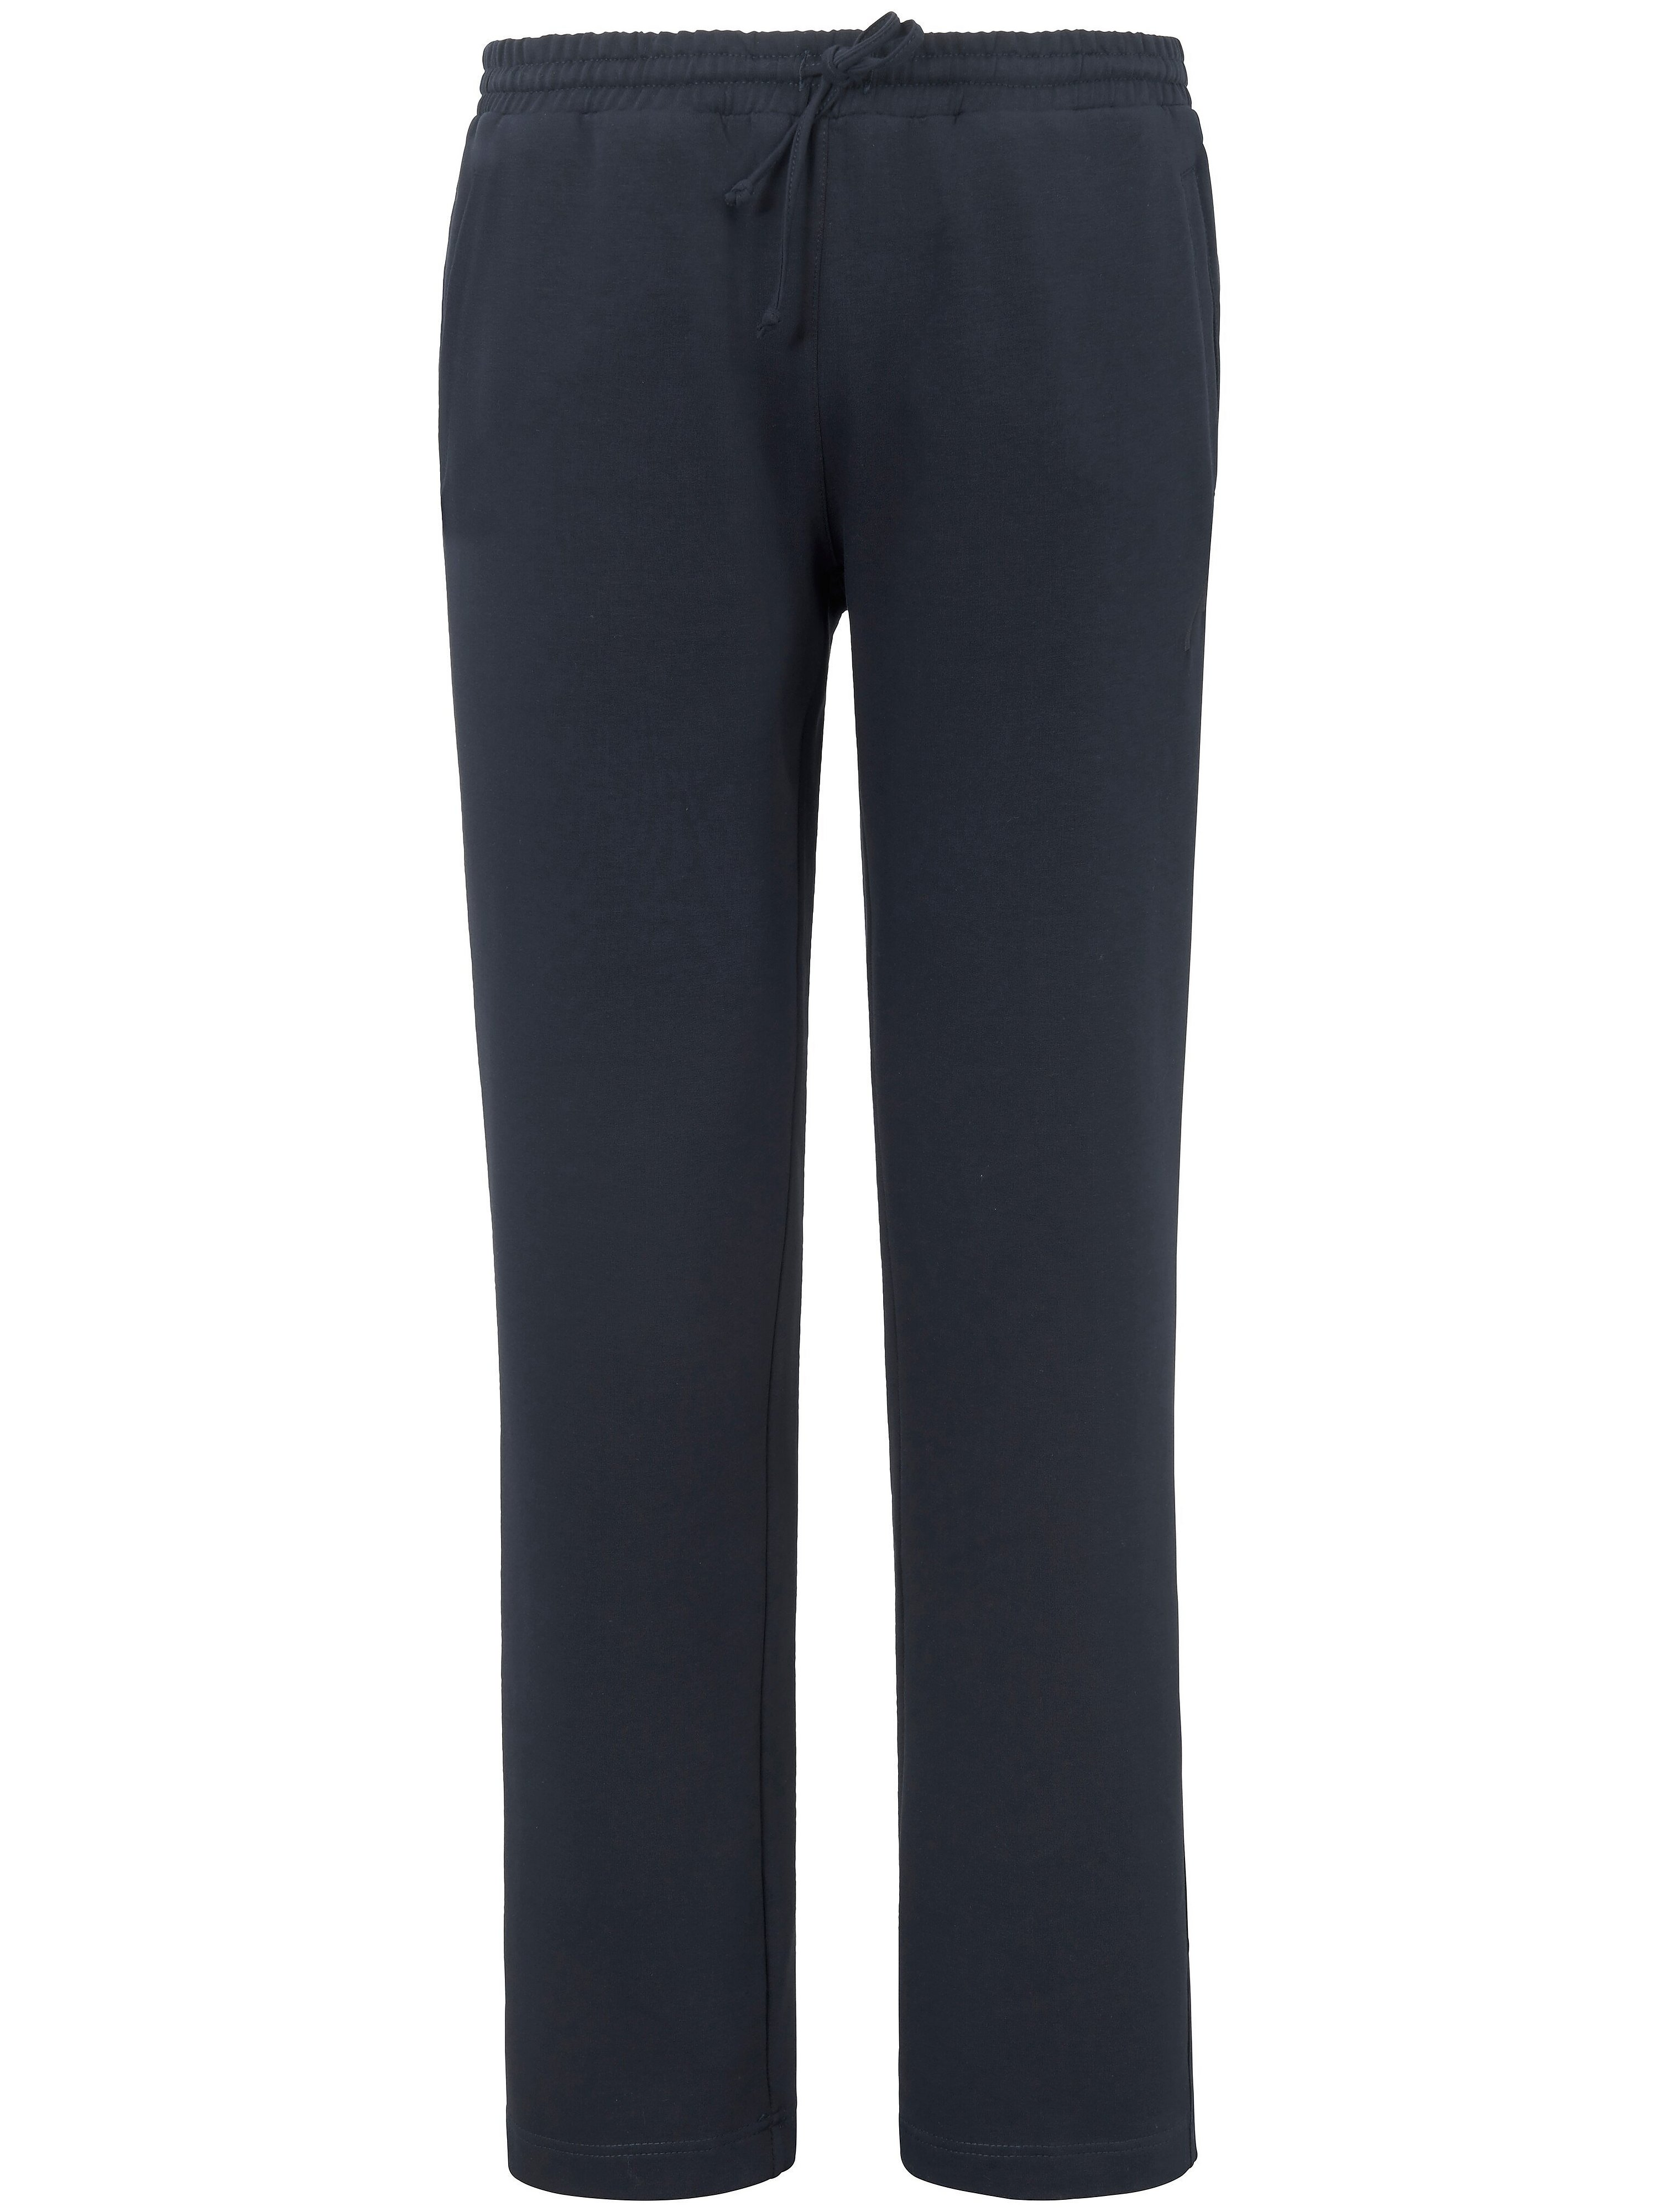 Le pantalon jogging  Authentic Klein bleu taille 58